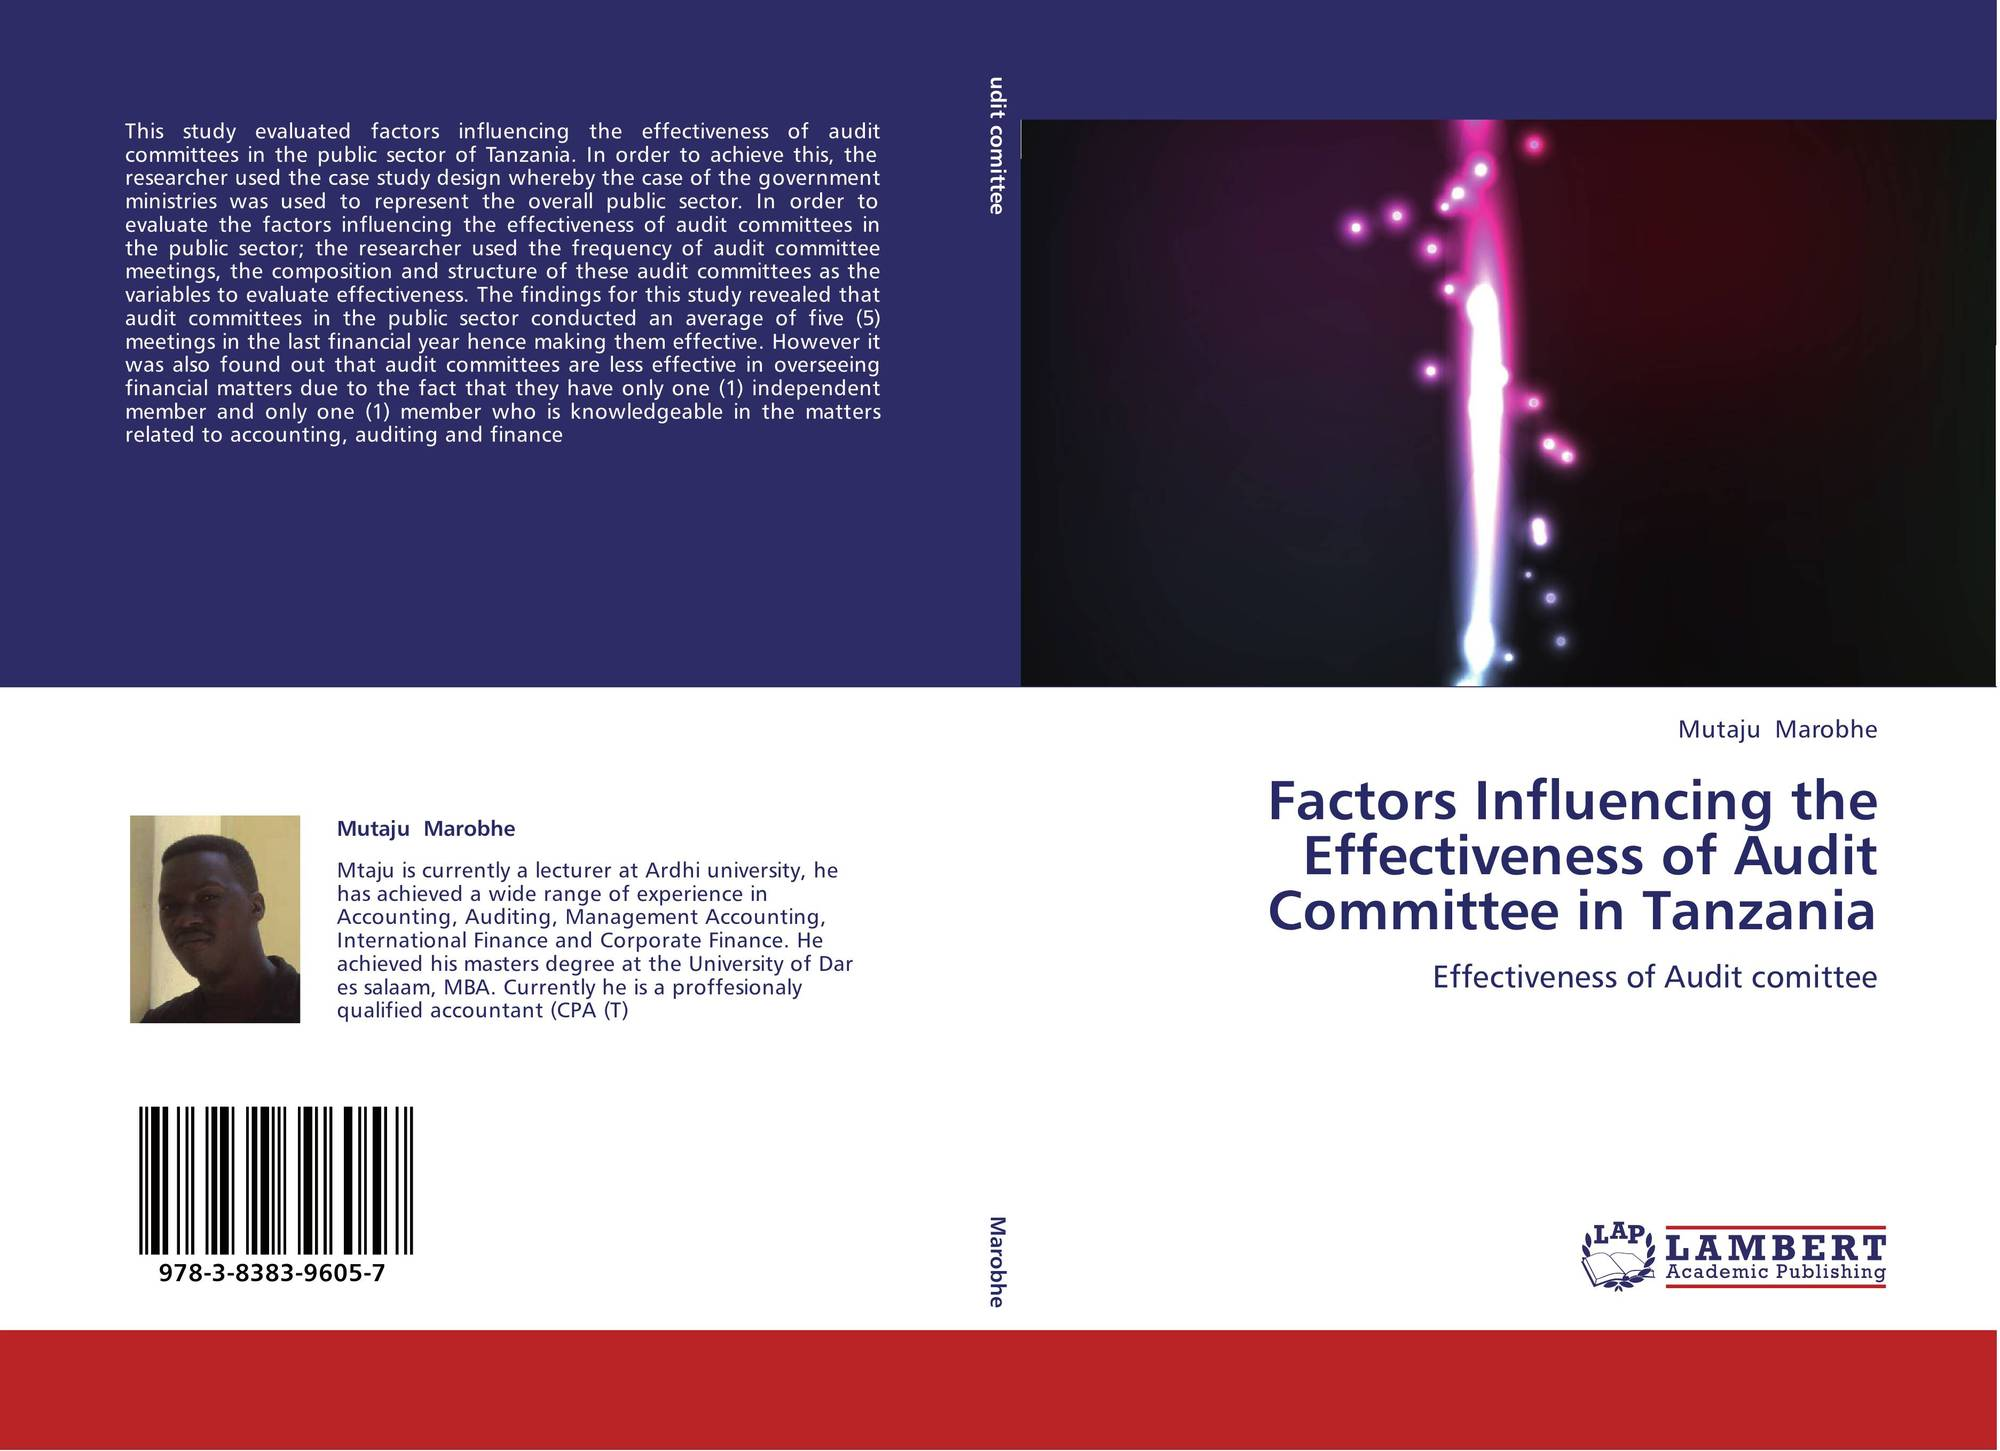 factors that influence group effectiveness Understanding the factors that influence decision making process is important to understanding what decisions are made that is, the factors that influence the process may impact the outcomes heuristics serve as a framework in which satisfactory decisions are made quickly and with ease (shah & oppenheimer, 2008).